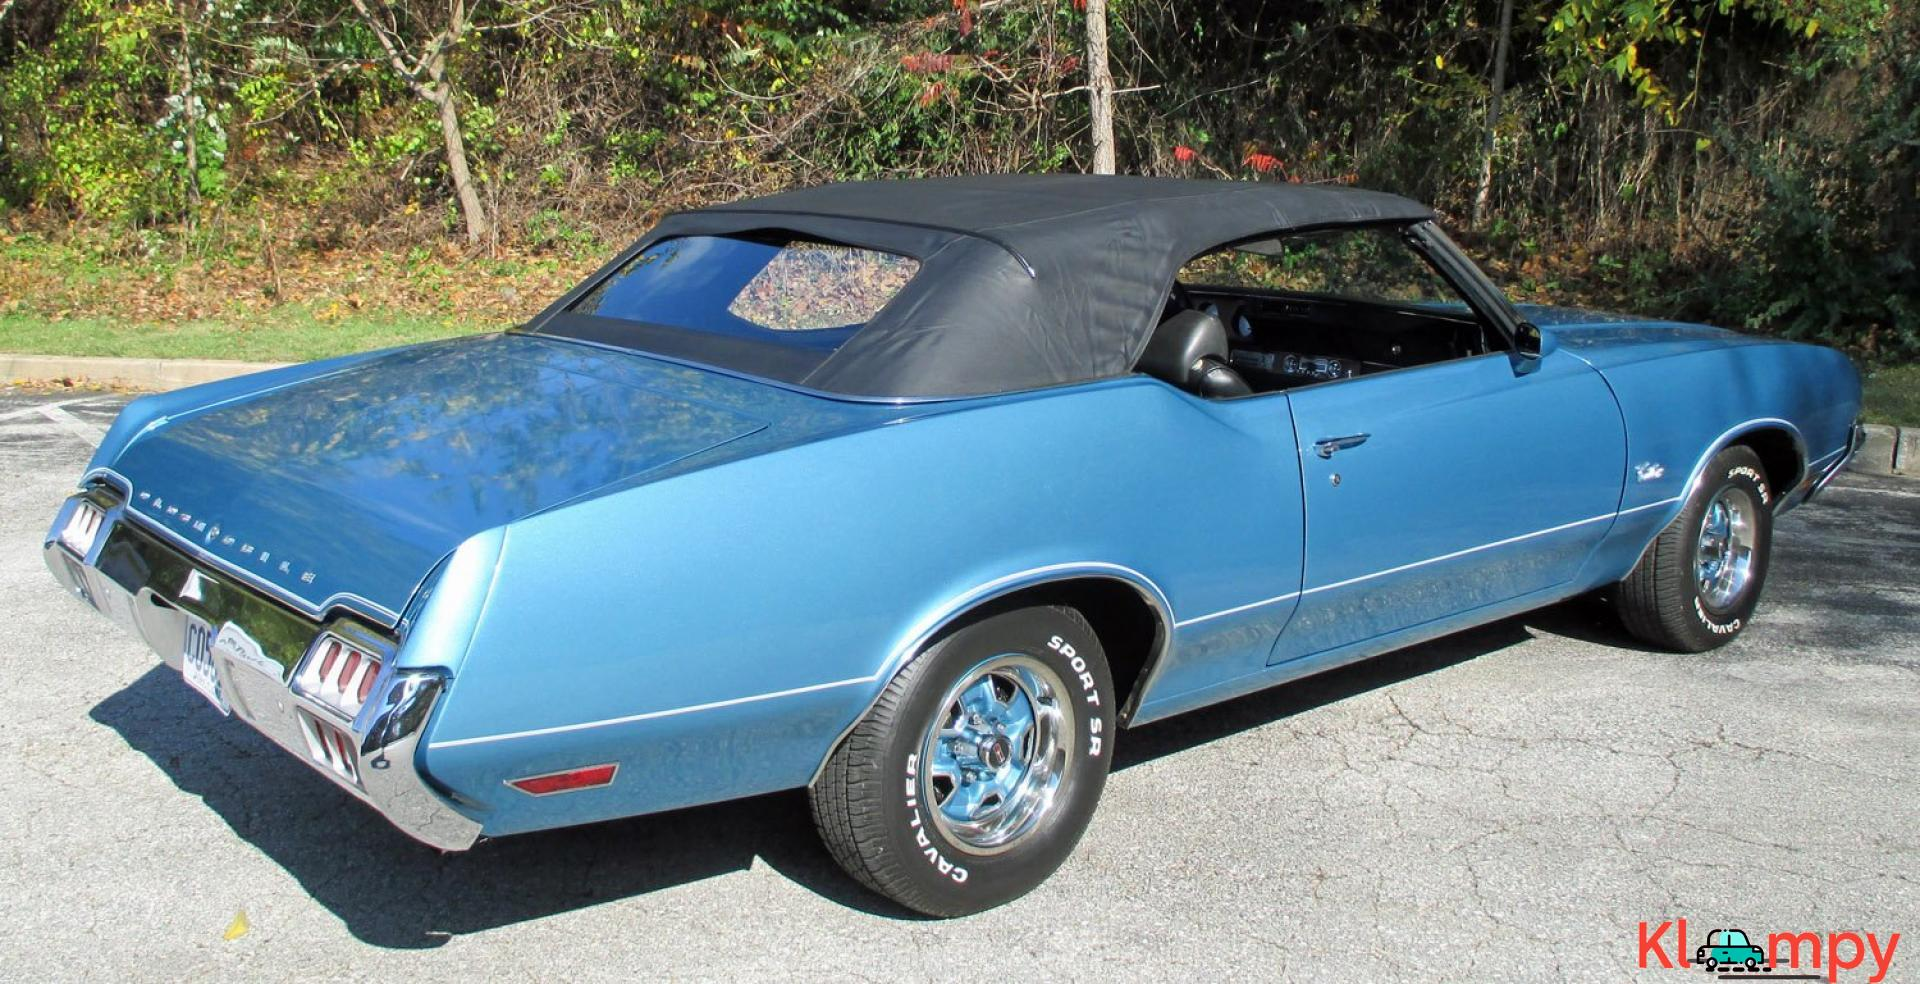 1972 Oldsmobile Cutlass Supreme 350 Convertible V8 - 9/19